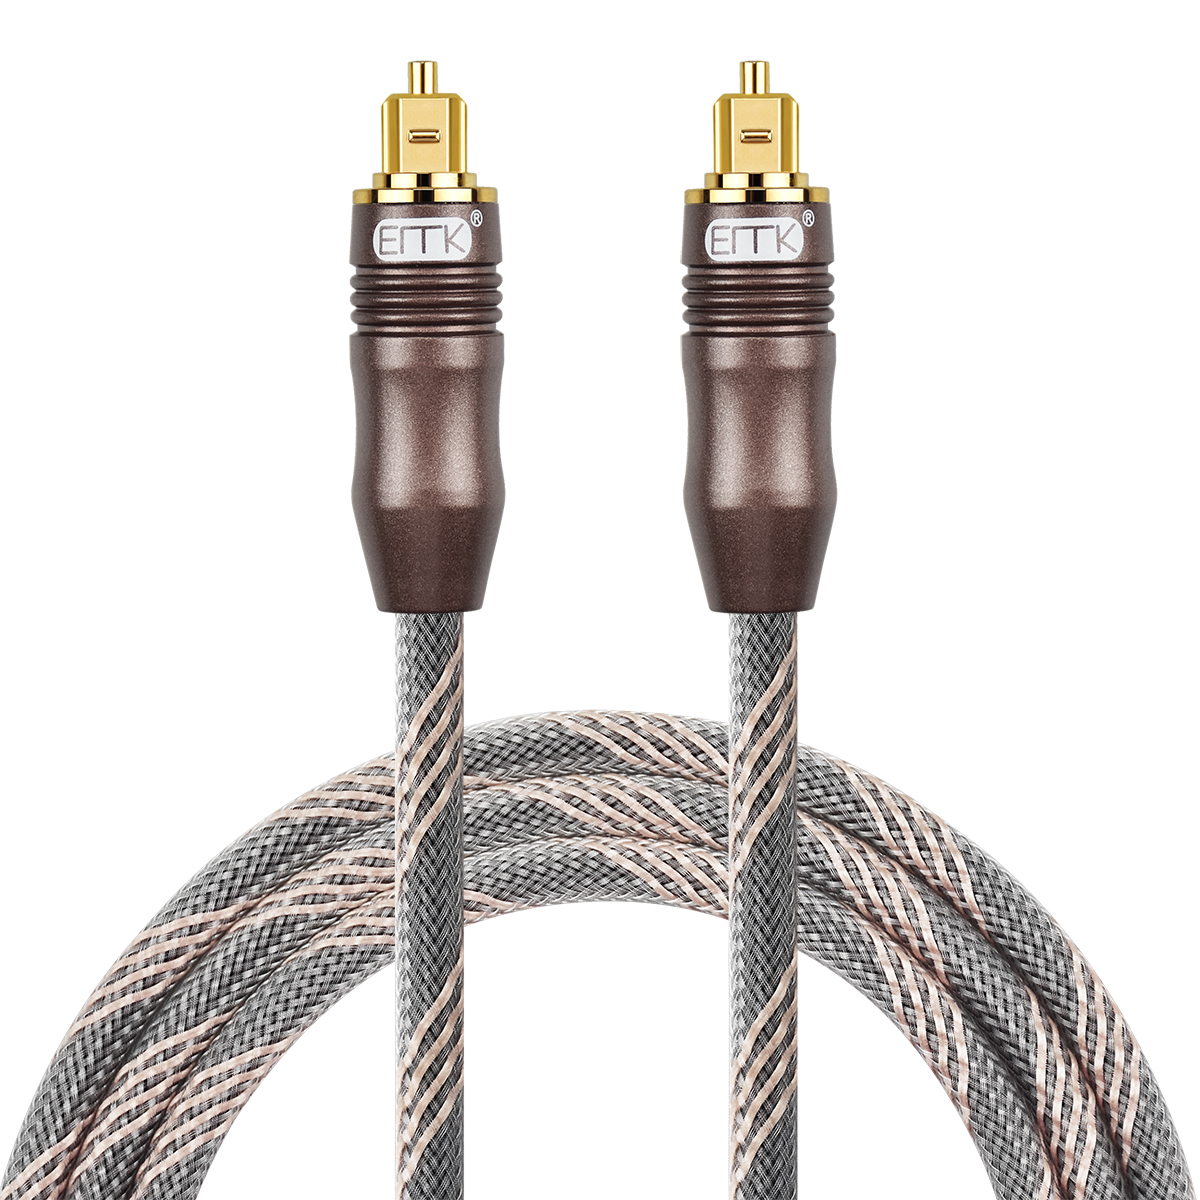 hight resolution of emk digital toslink optical audio cable fiber optic spdif cord wire sound bar home theater tv dvd ps3 4 1 5 2m